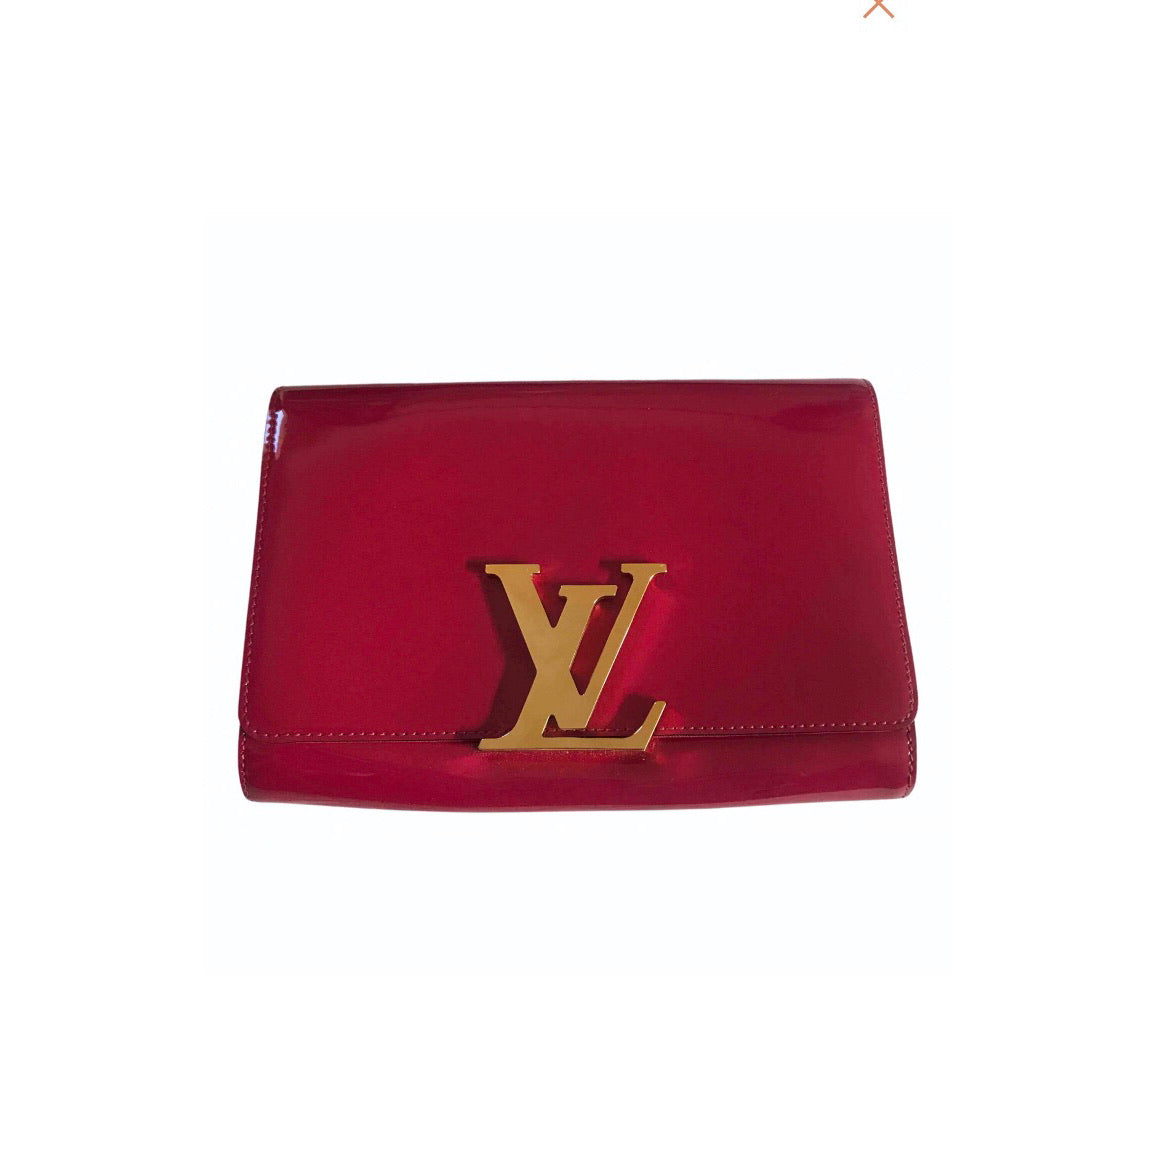 LOUIS VUITTON - LOUISE PINK PATENT CLUTCH